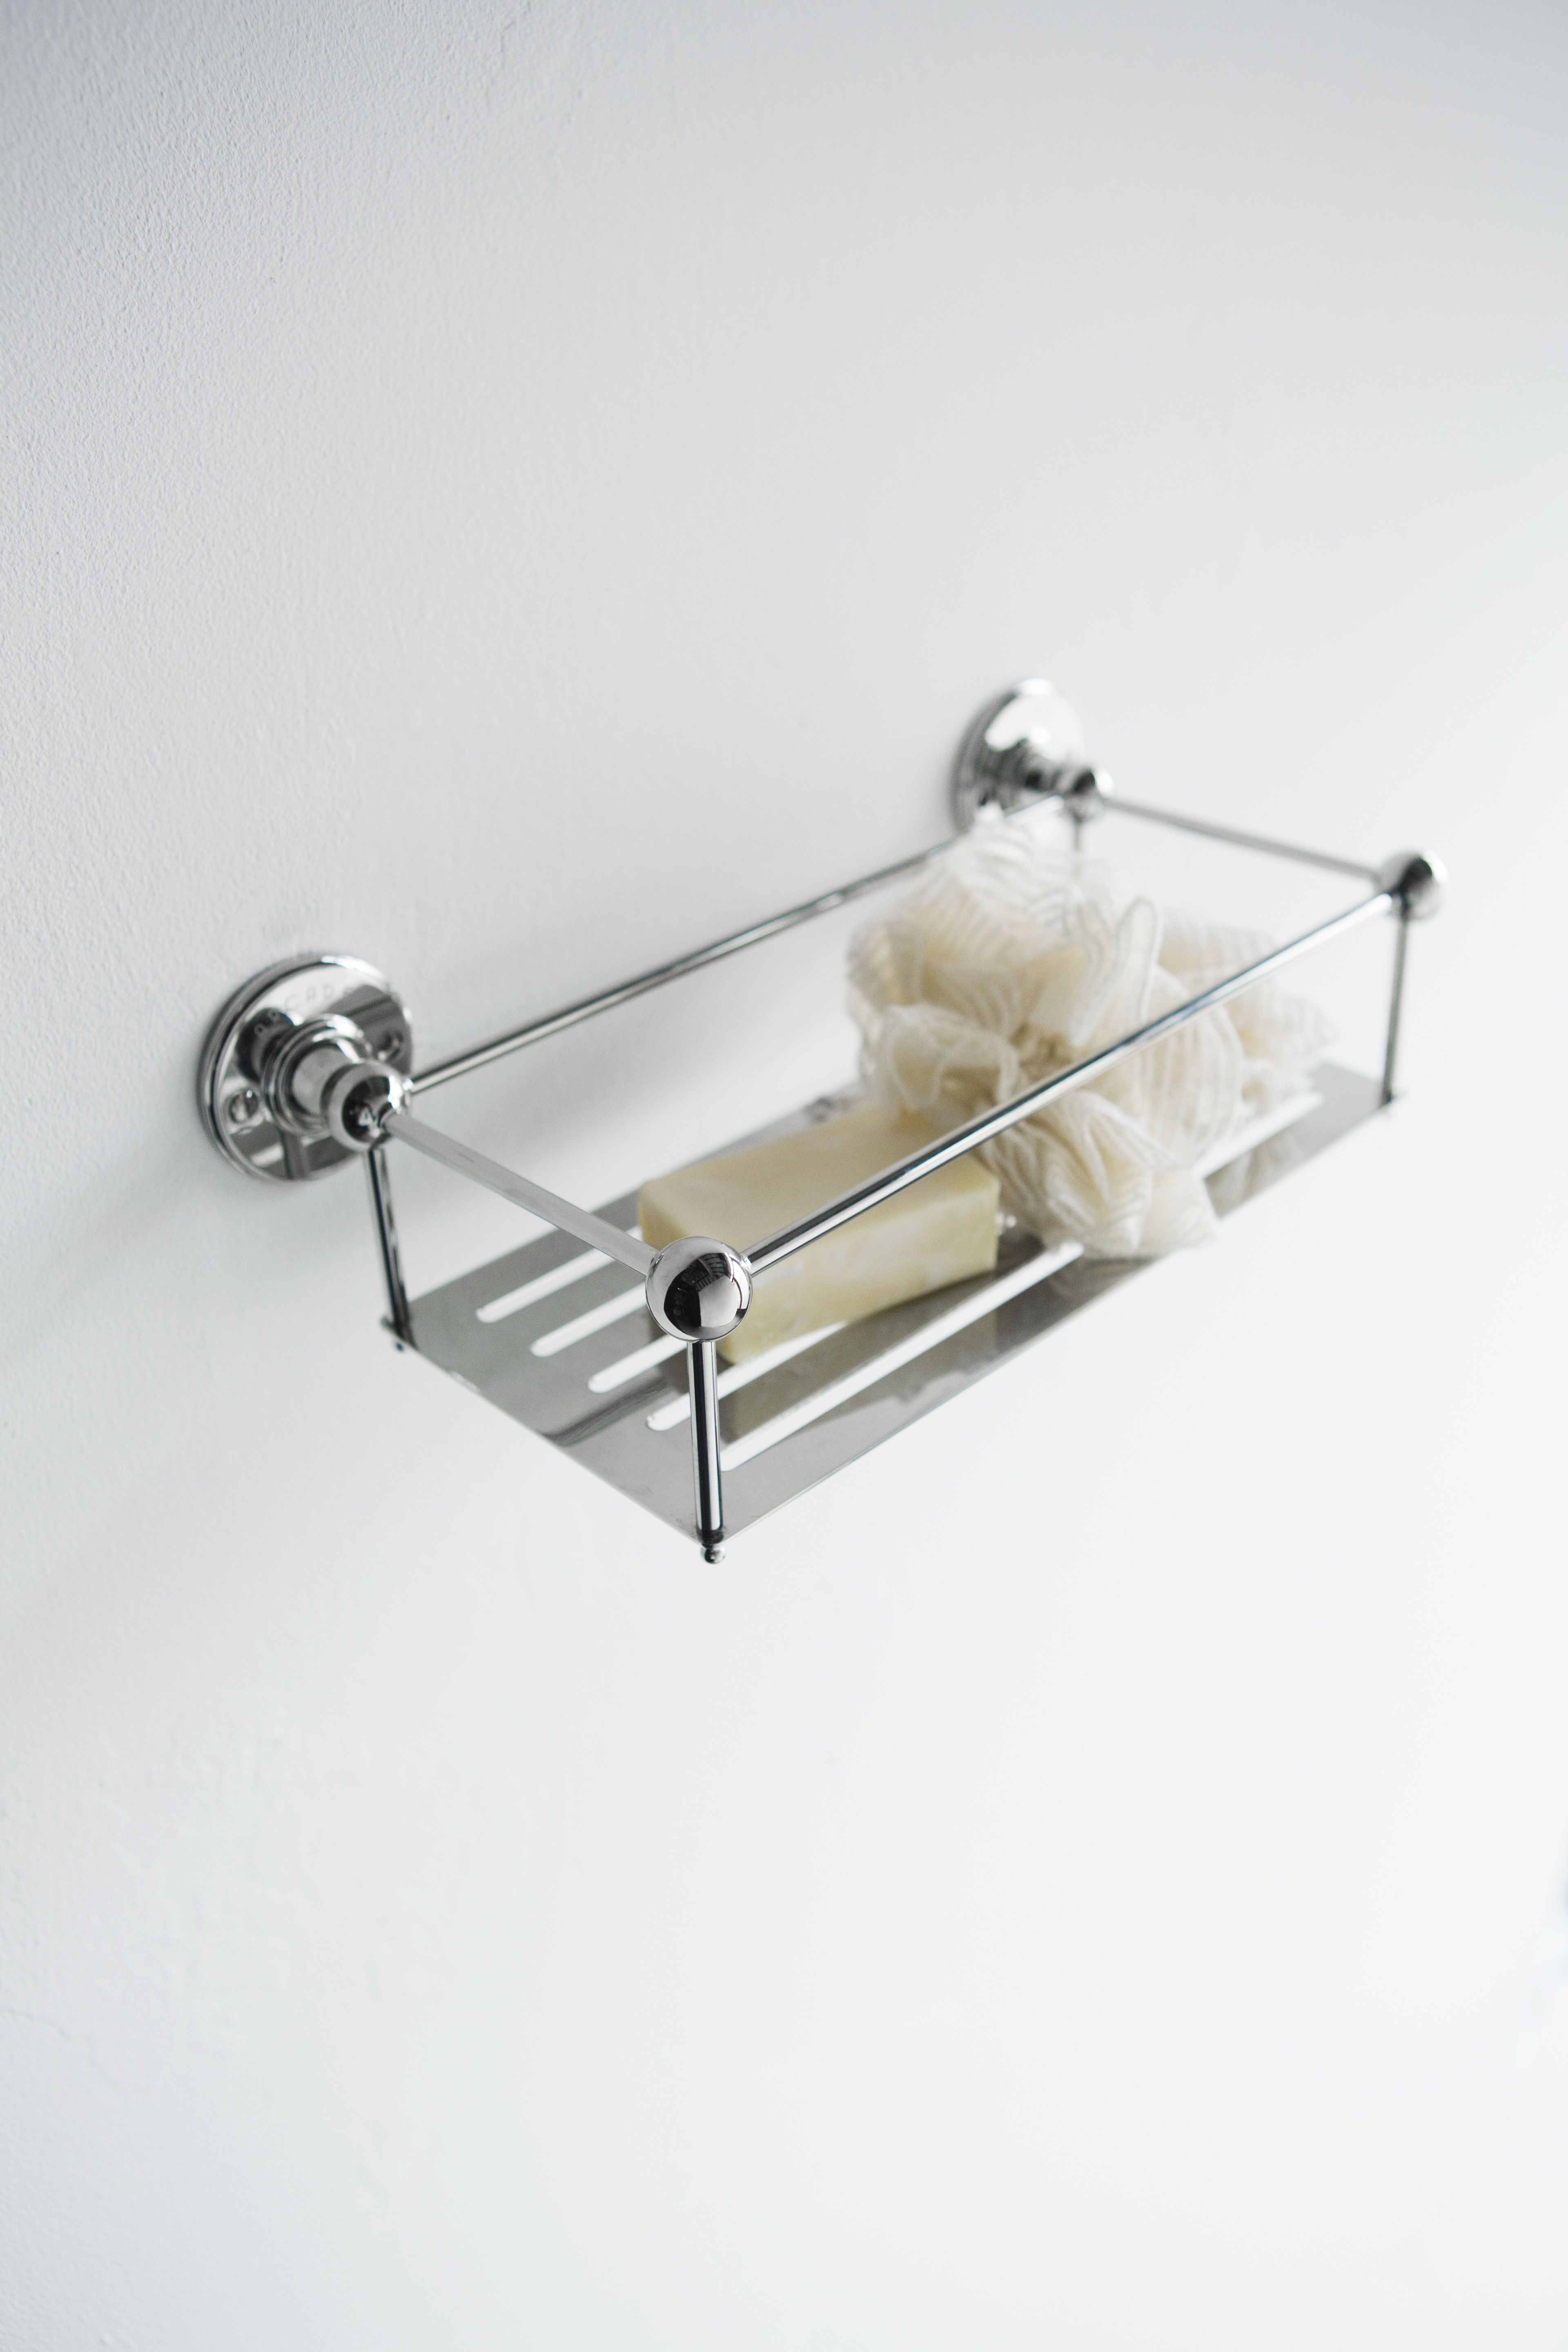 Sleek Bathroom Accessories   Wall Mounted Wire Basket From Arcade Bathrooms.  Http://www.arcadebathrooms.com/Products/ProductDetail?